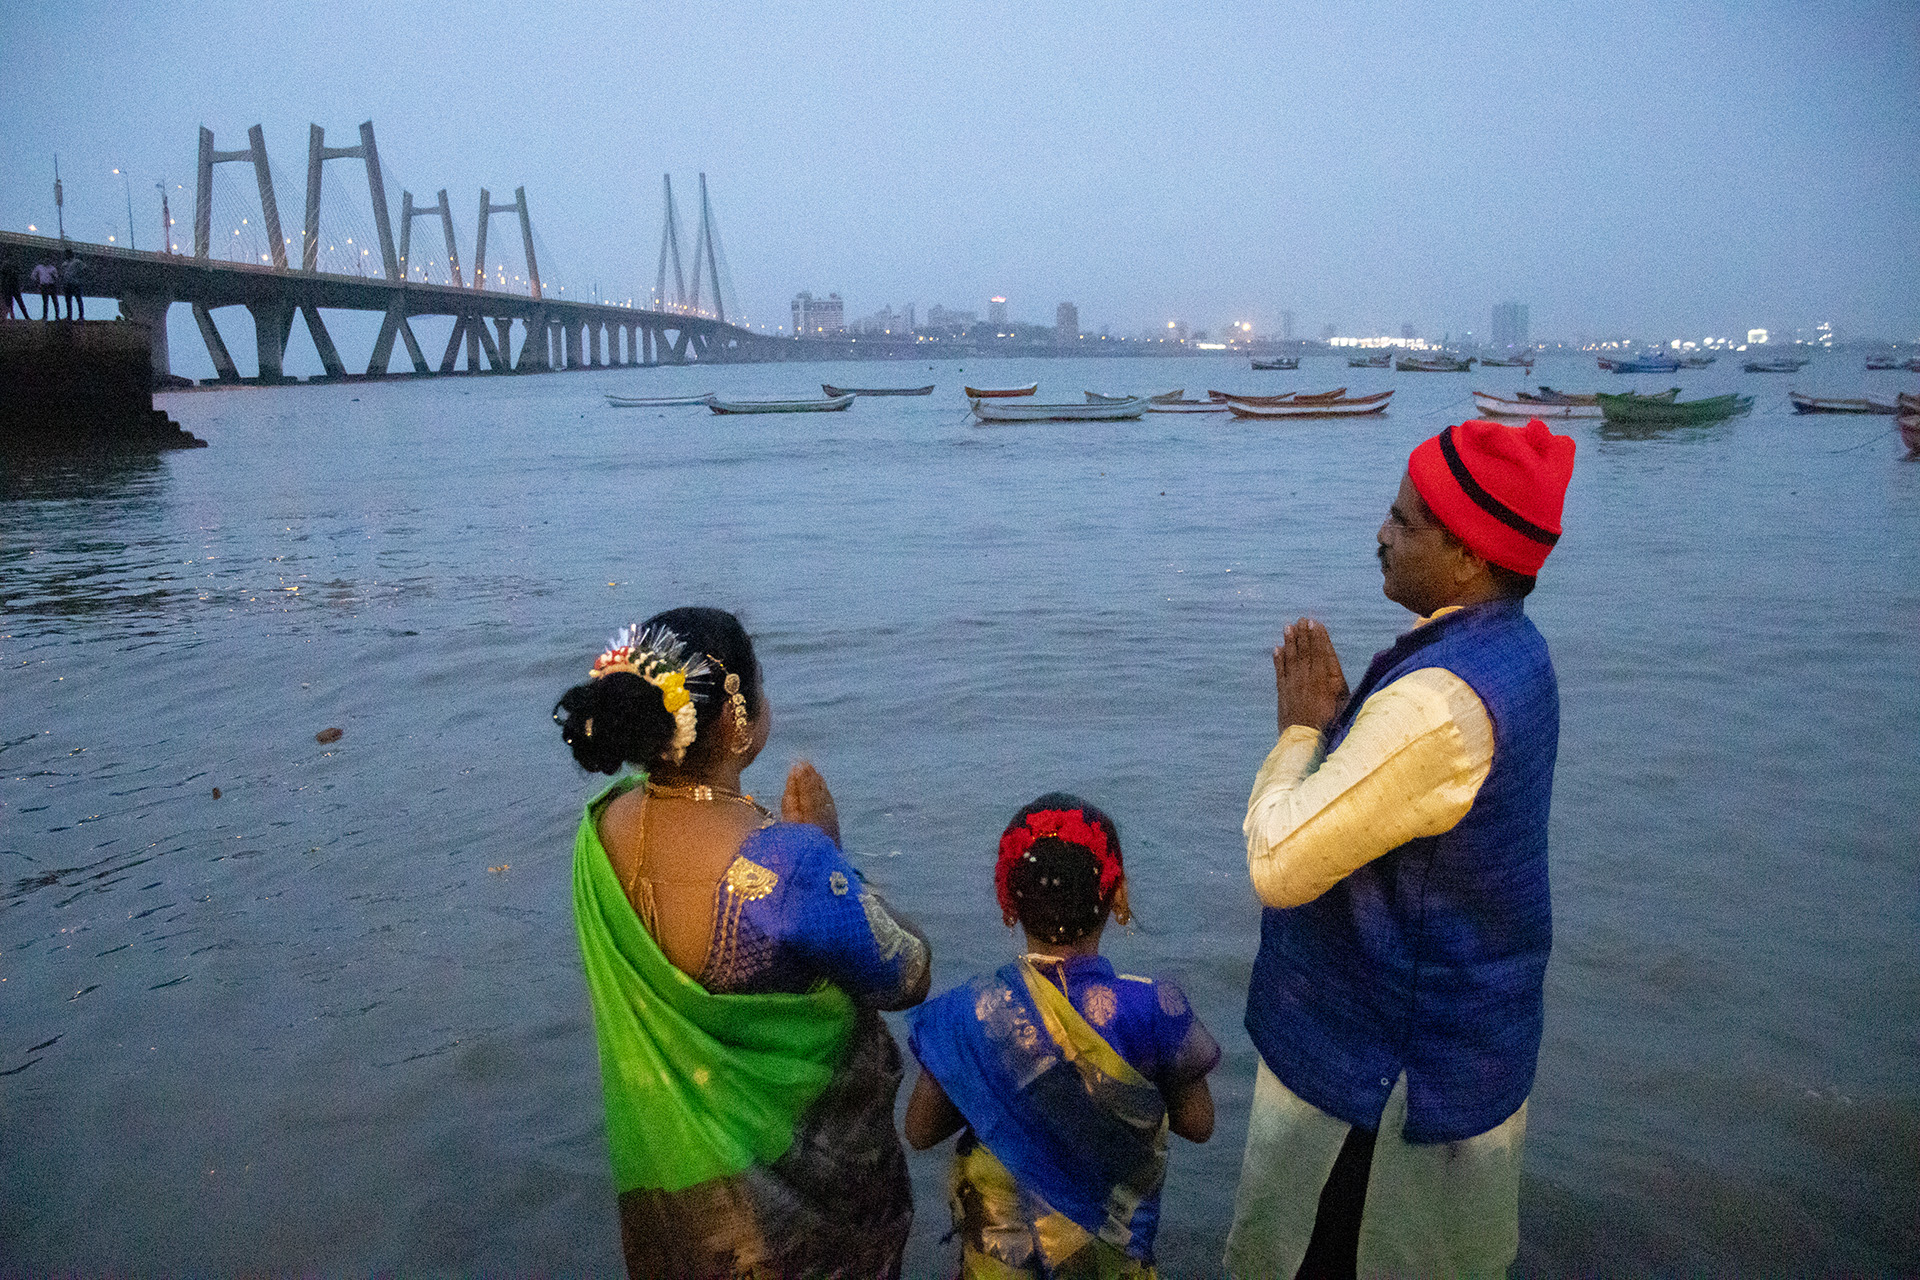 Once in every year, the fishermen community in Maharashtra performs puja at sea for lord Varuna, the god of the ocean and waters. Devotees offer offerings such as rice, flowers and coconuts to the god and ask for calm water and avoidance from water calamities. The festival is called Narali Poornima.